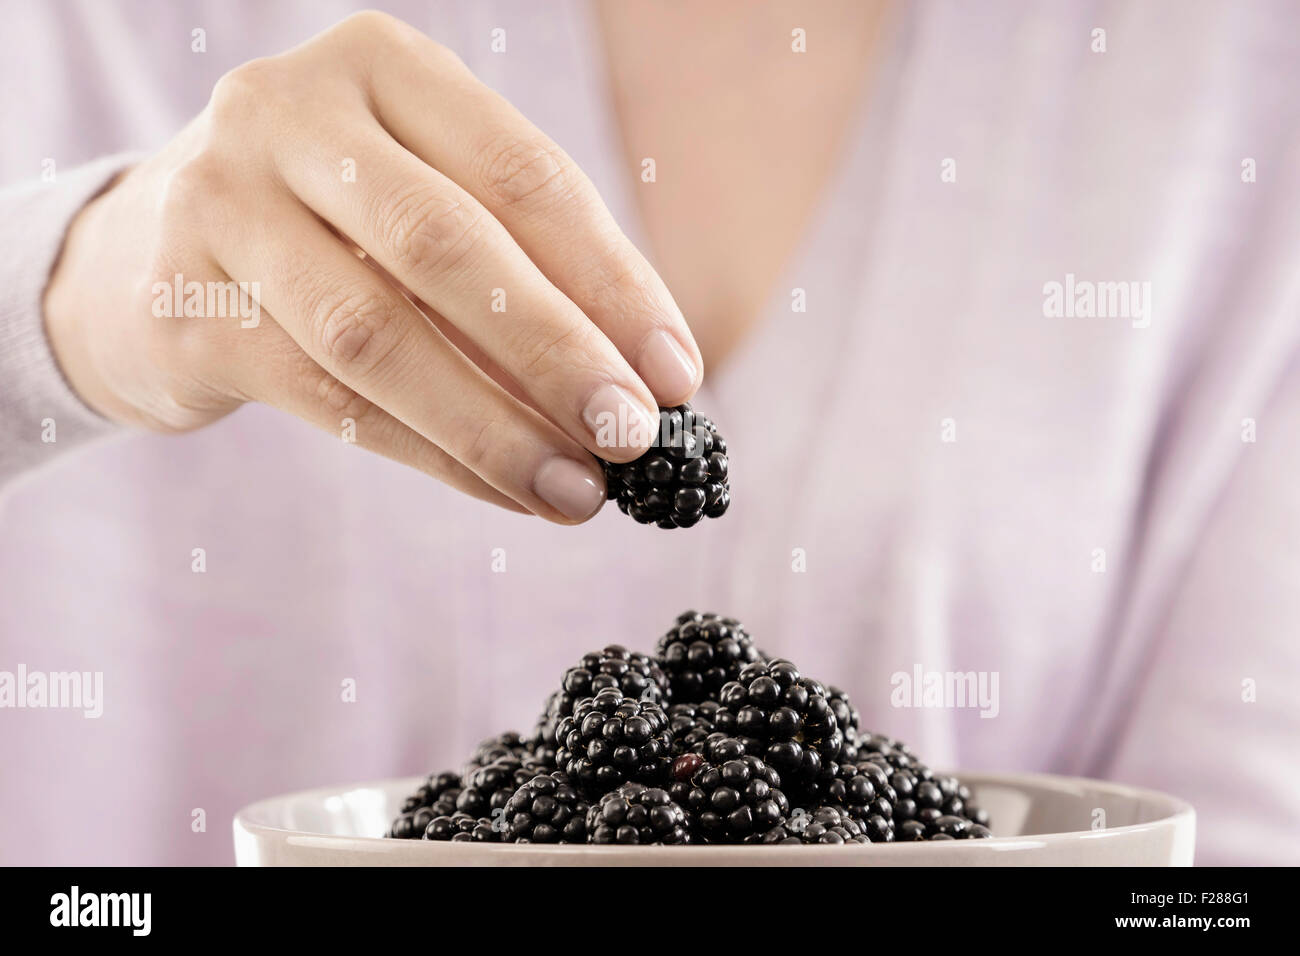 Mid section view of woman eating blackberry, Bavaria, Germany - Stock Image